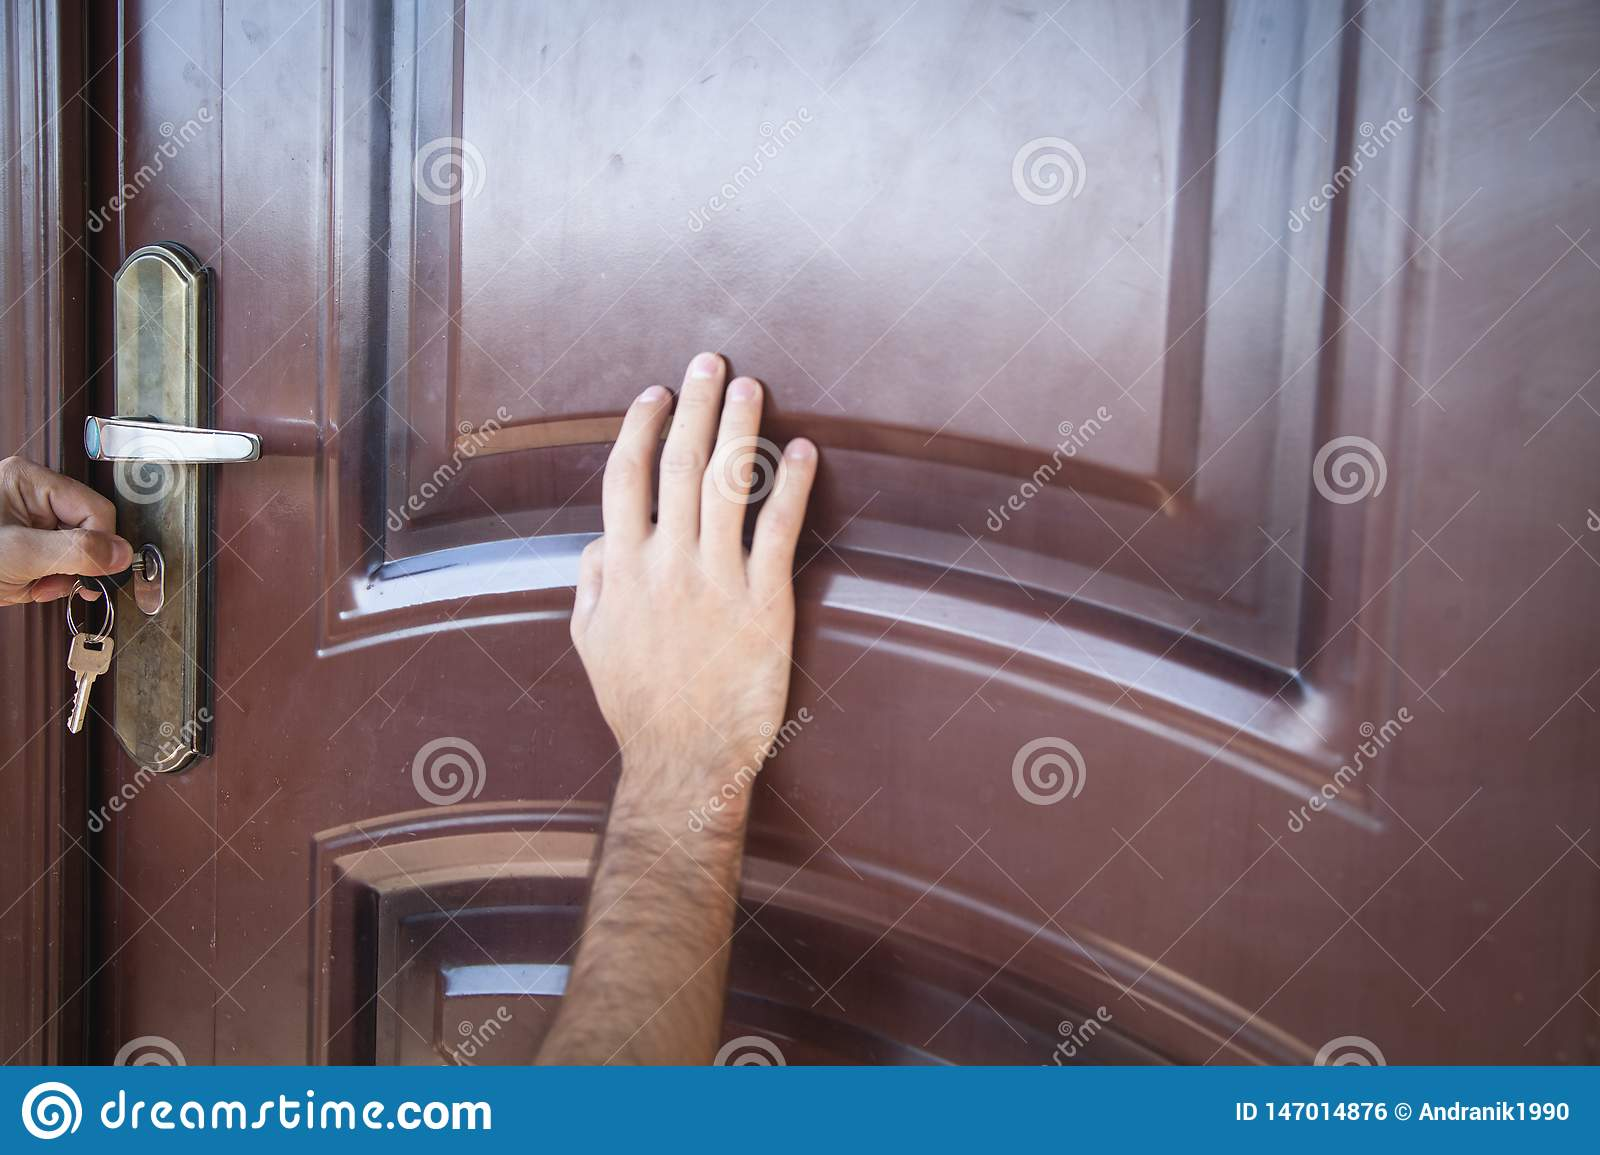 Hand Unlocking The Door With Key Stock Photo - Image of real